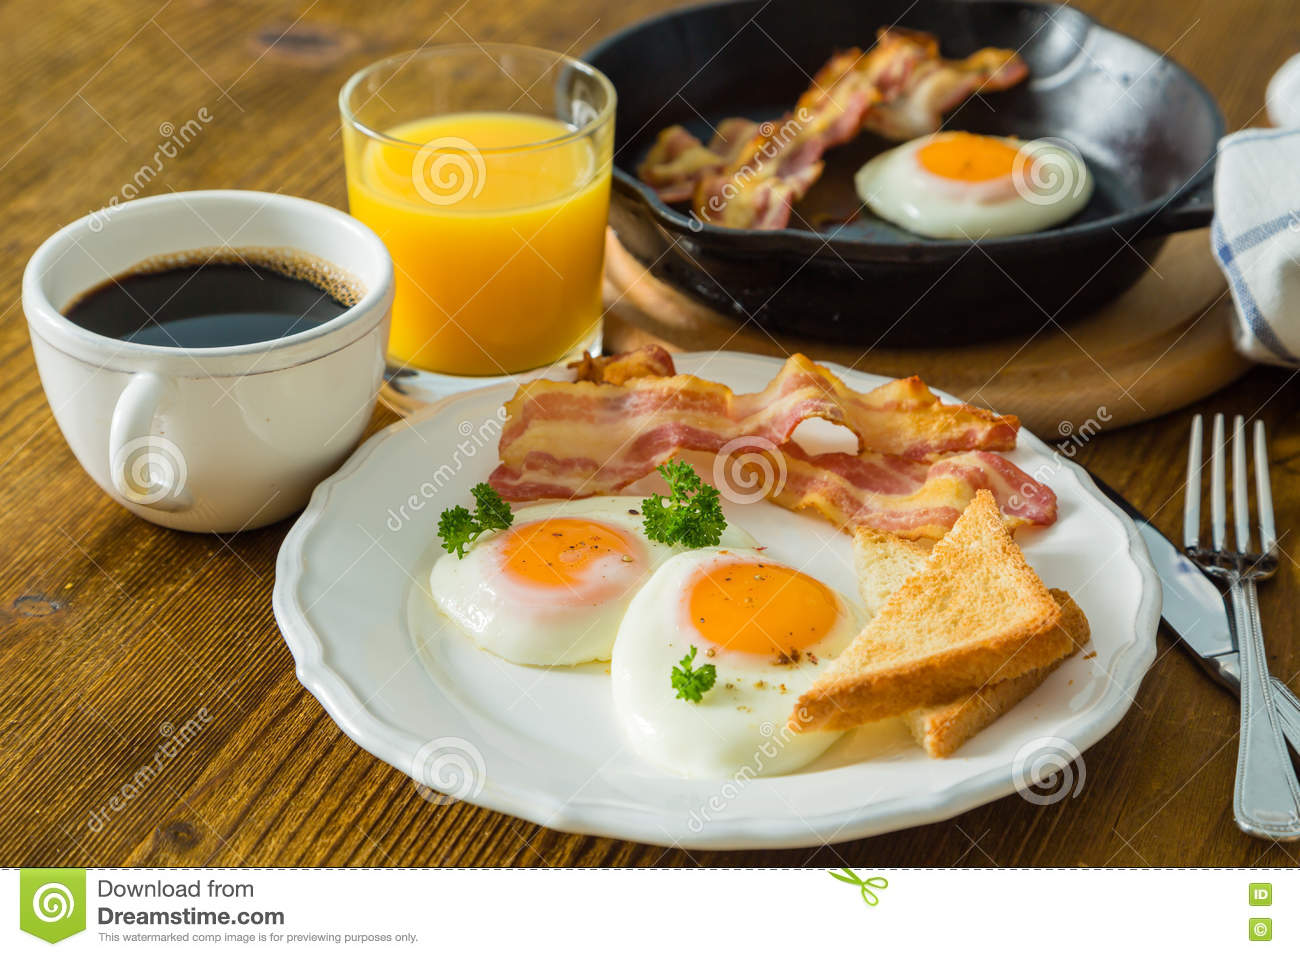 Download American Breakfast With Sunny Side Up Eggs, Bacon, Toast, Pancakes, Coffee And Juice Stock Image - Image of juice, full: 81973499